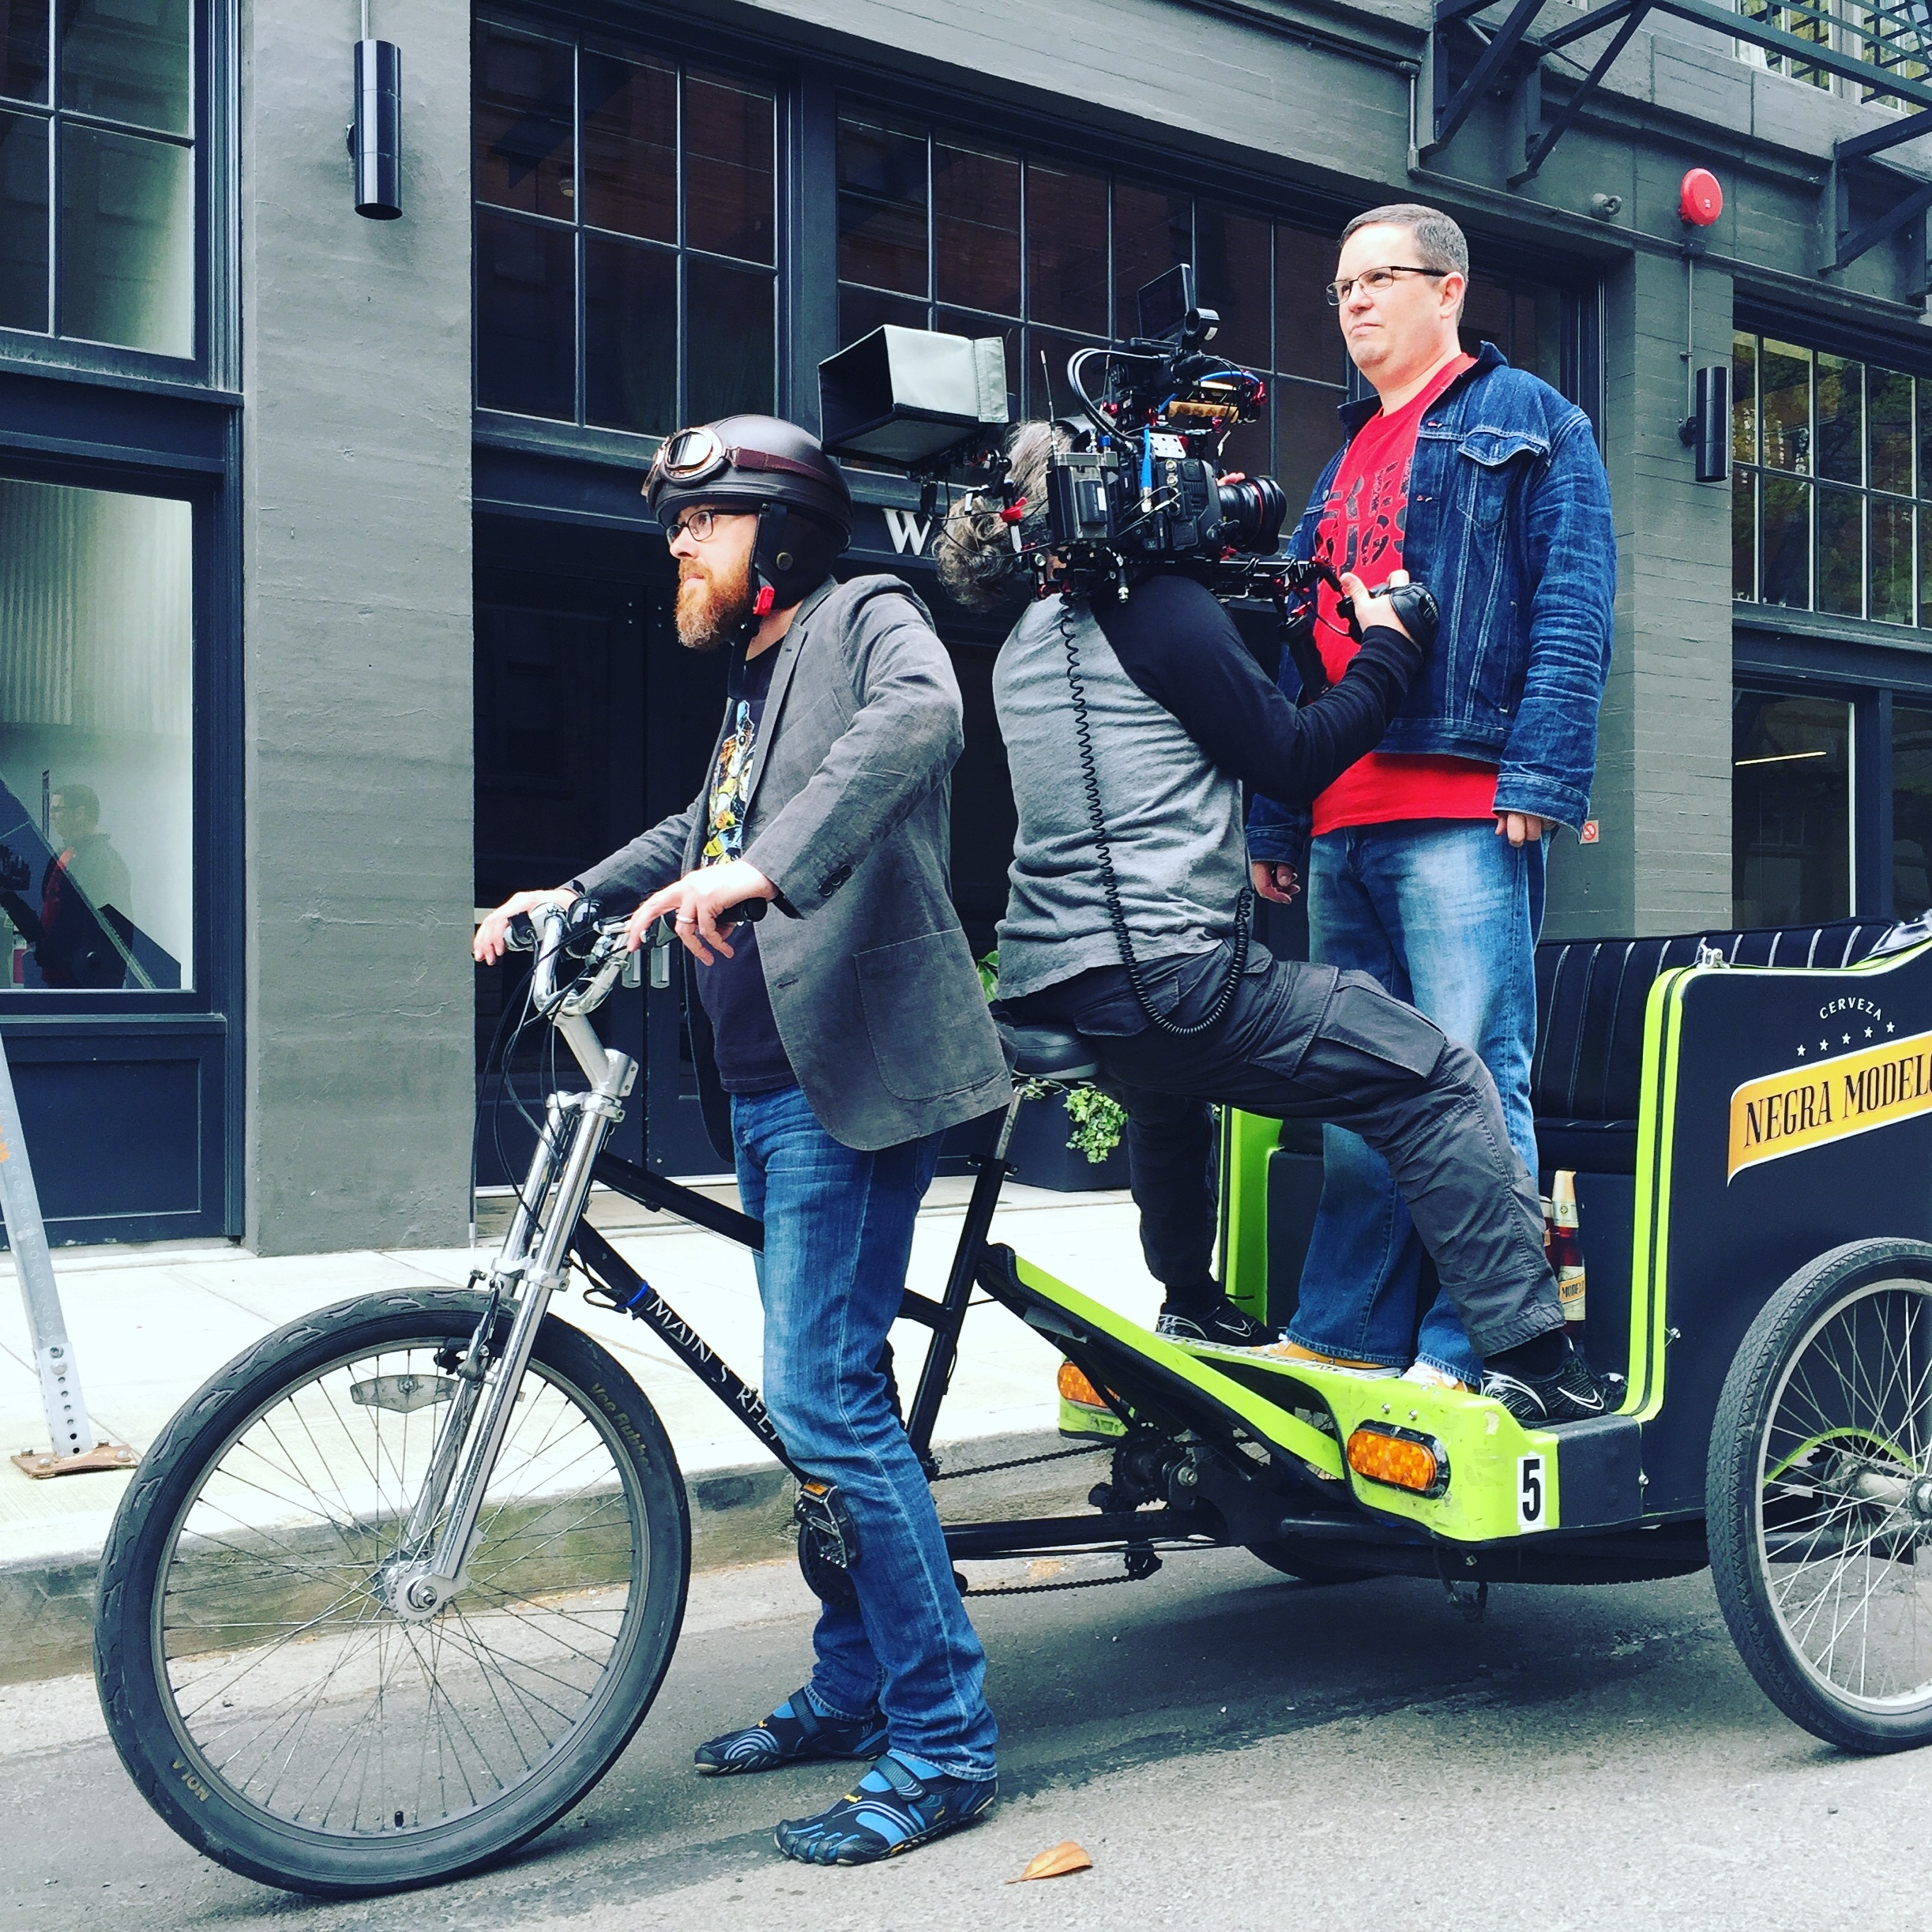 modern bike-pulled carriage with rider, driver, and director with video camera